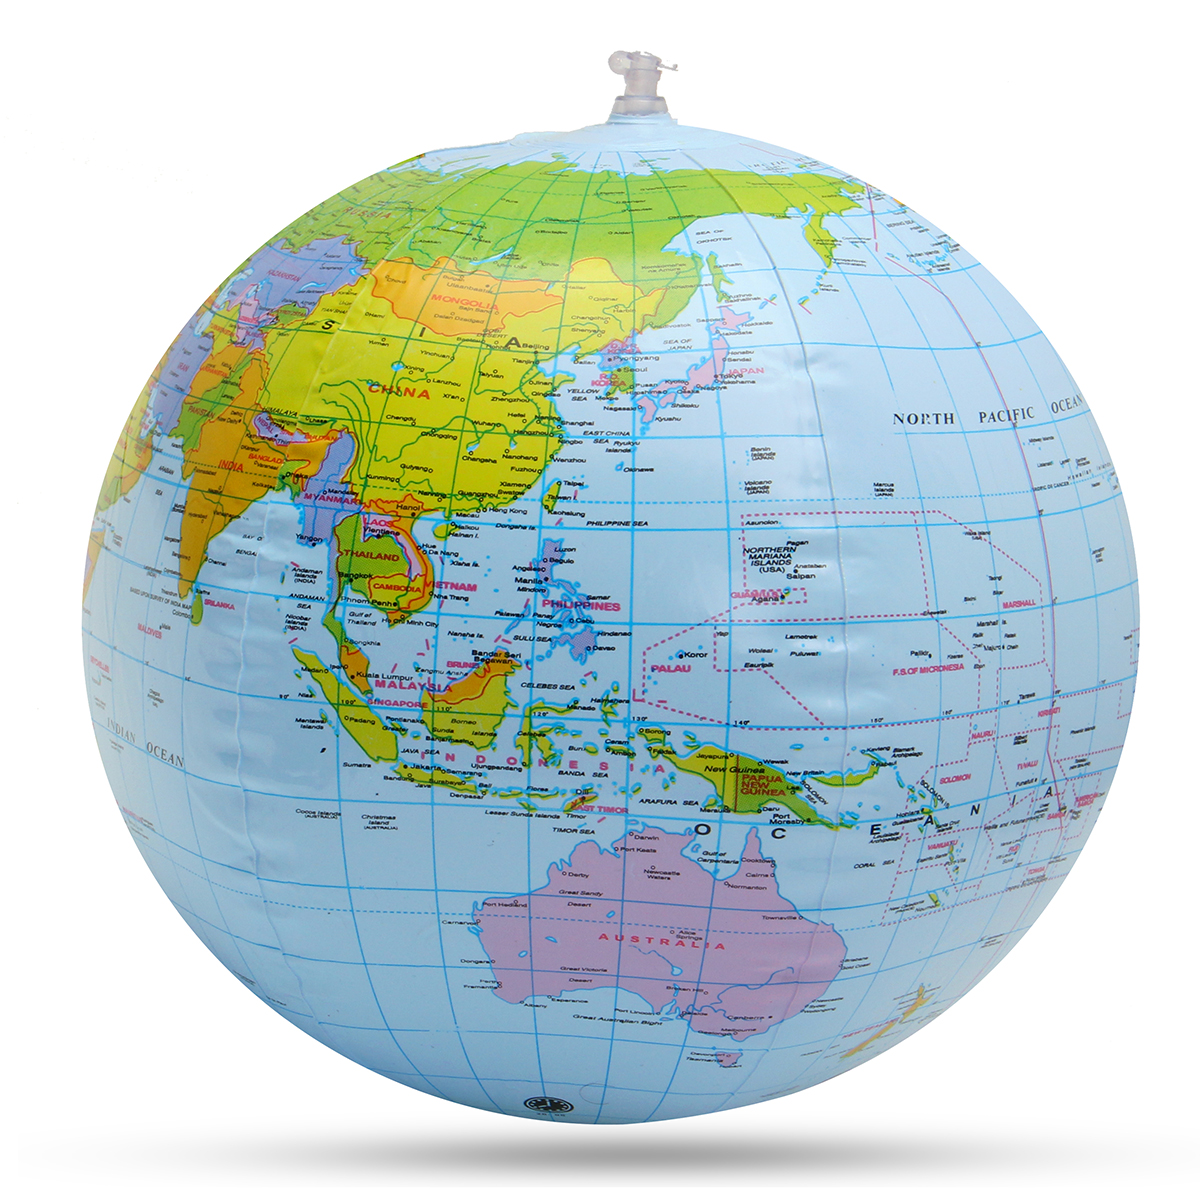 Office & School Supplies 14.2cm World Map Globe School Geography Teaching Tool Kids Educational Toy Home Office Ideal Miniatures With Swivel Stand Gift Teaching Resources